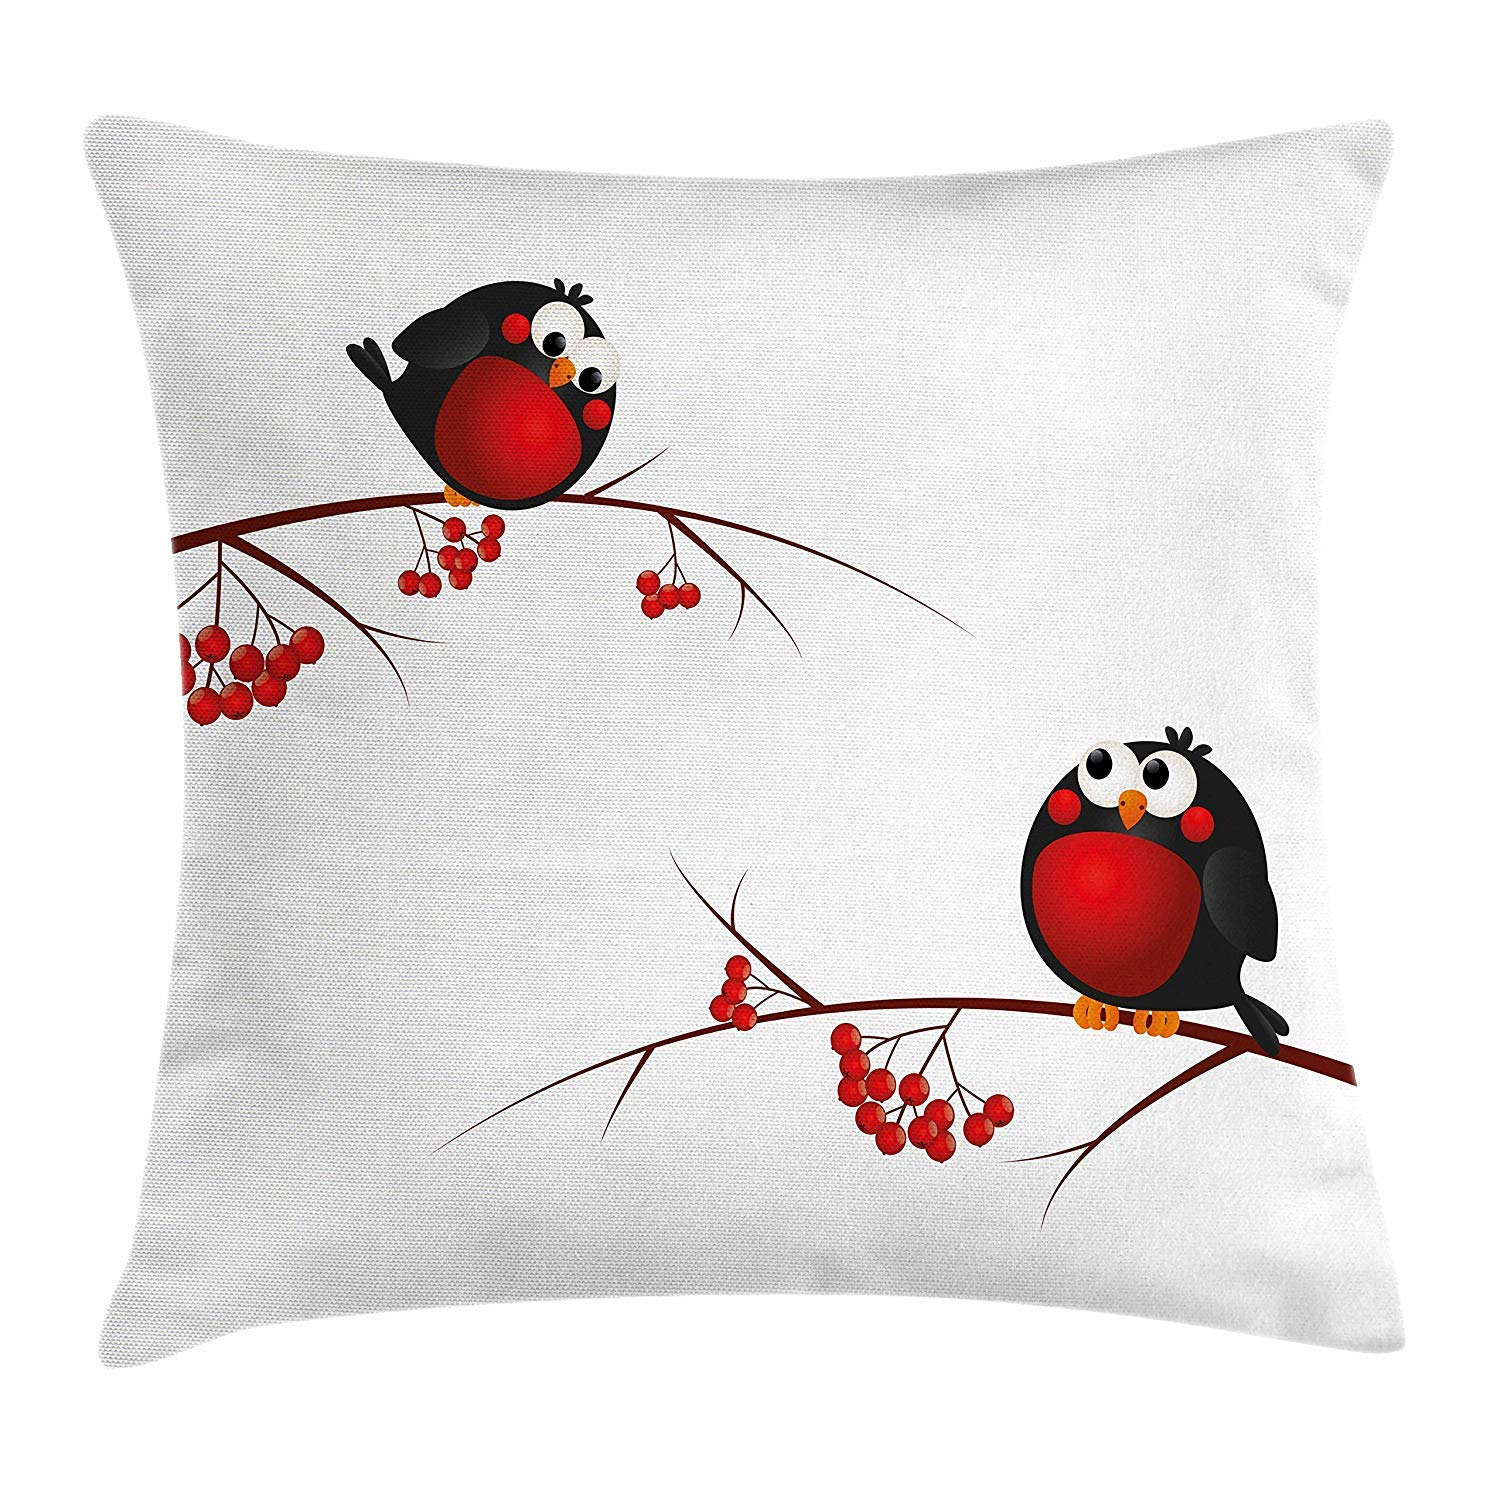 Rowan Throw Pillow Cushion Cover, Cute Kids Themed Cartoon Style Birds on Branches Funny Happy Christmas Design, Decorative Square Accent Pillow Case, 18 X 18 inches, Red Black White K0k2t0